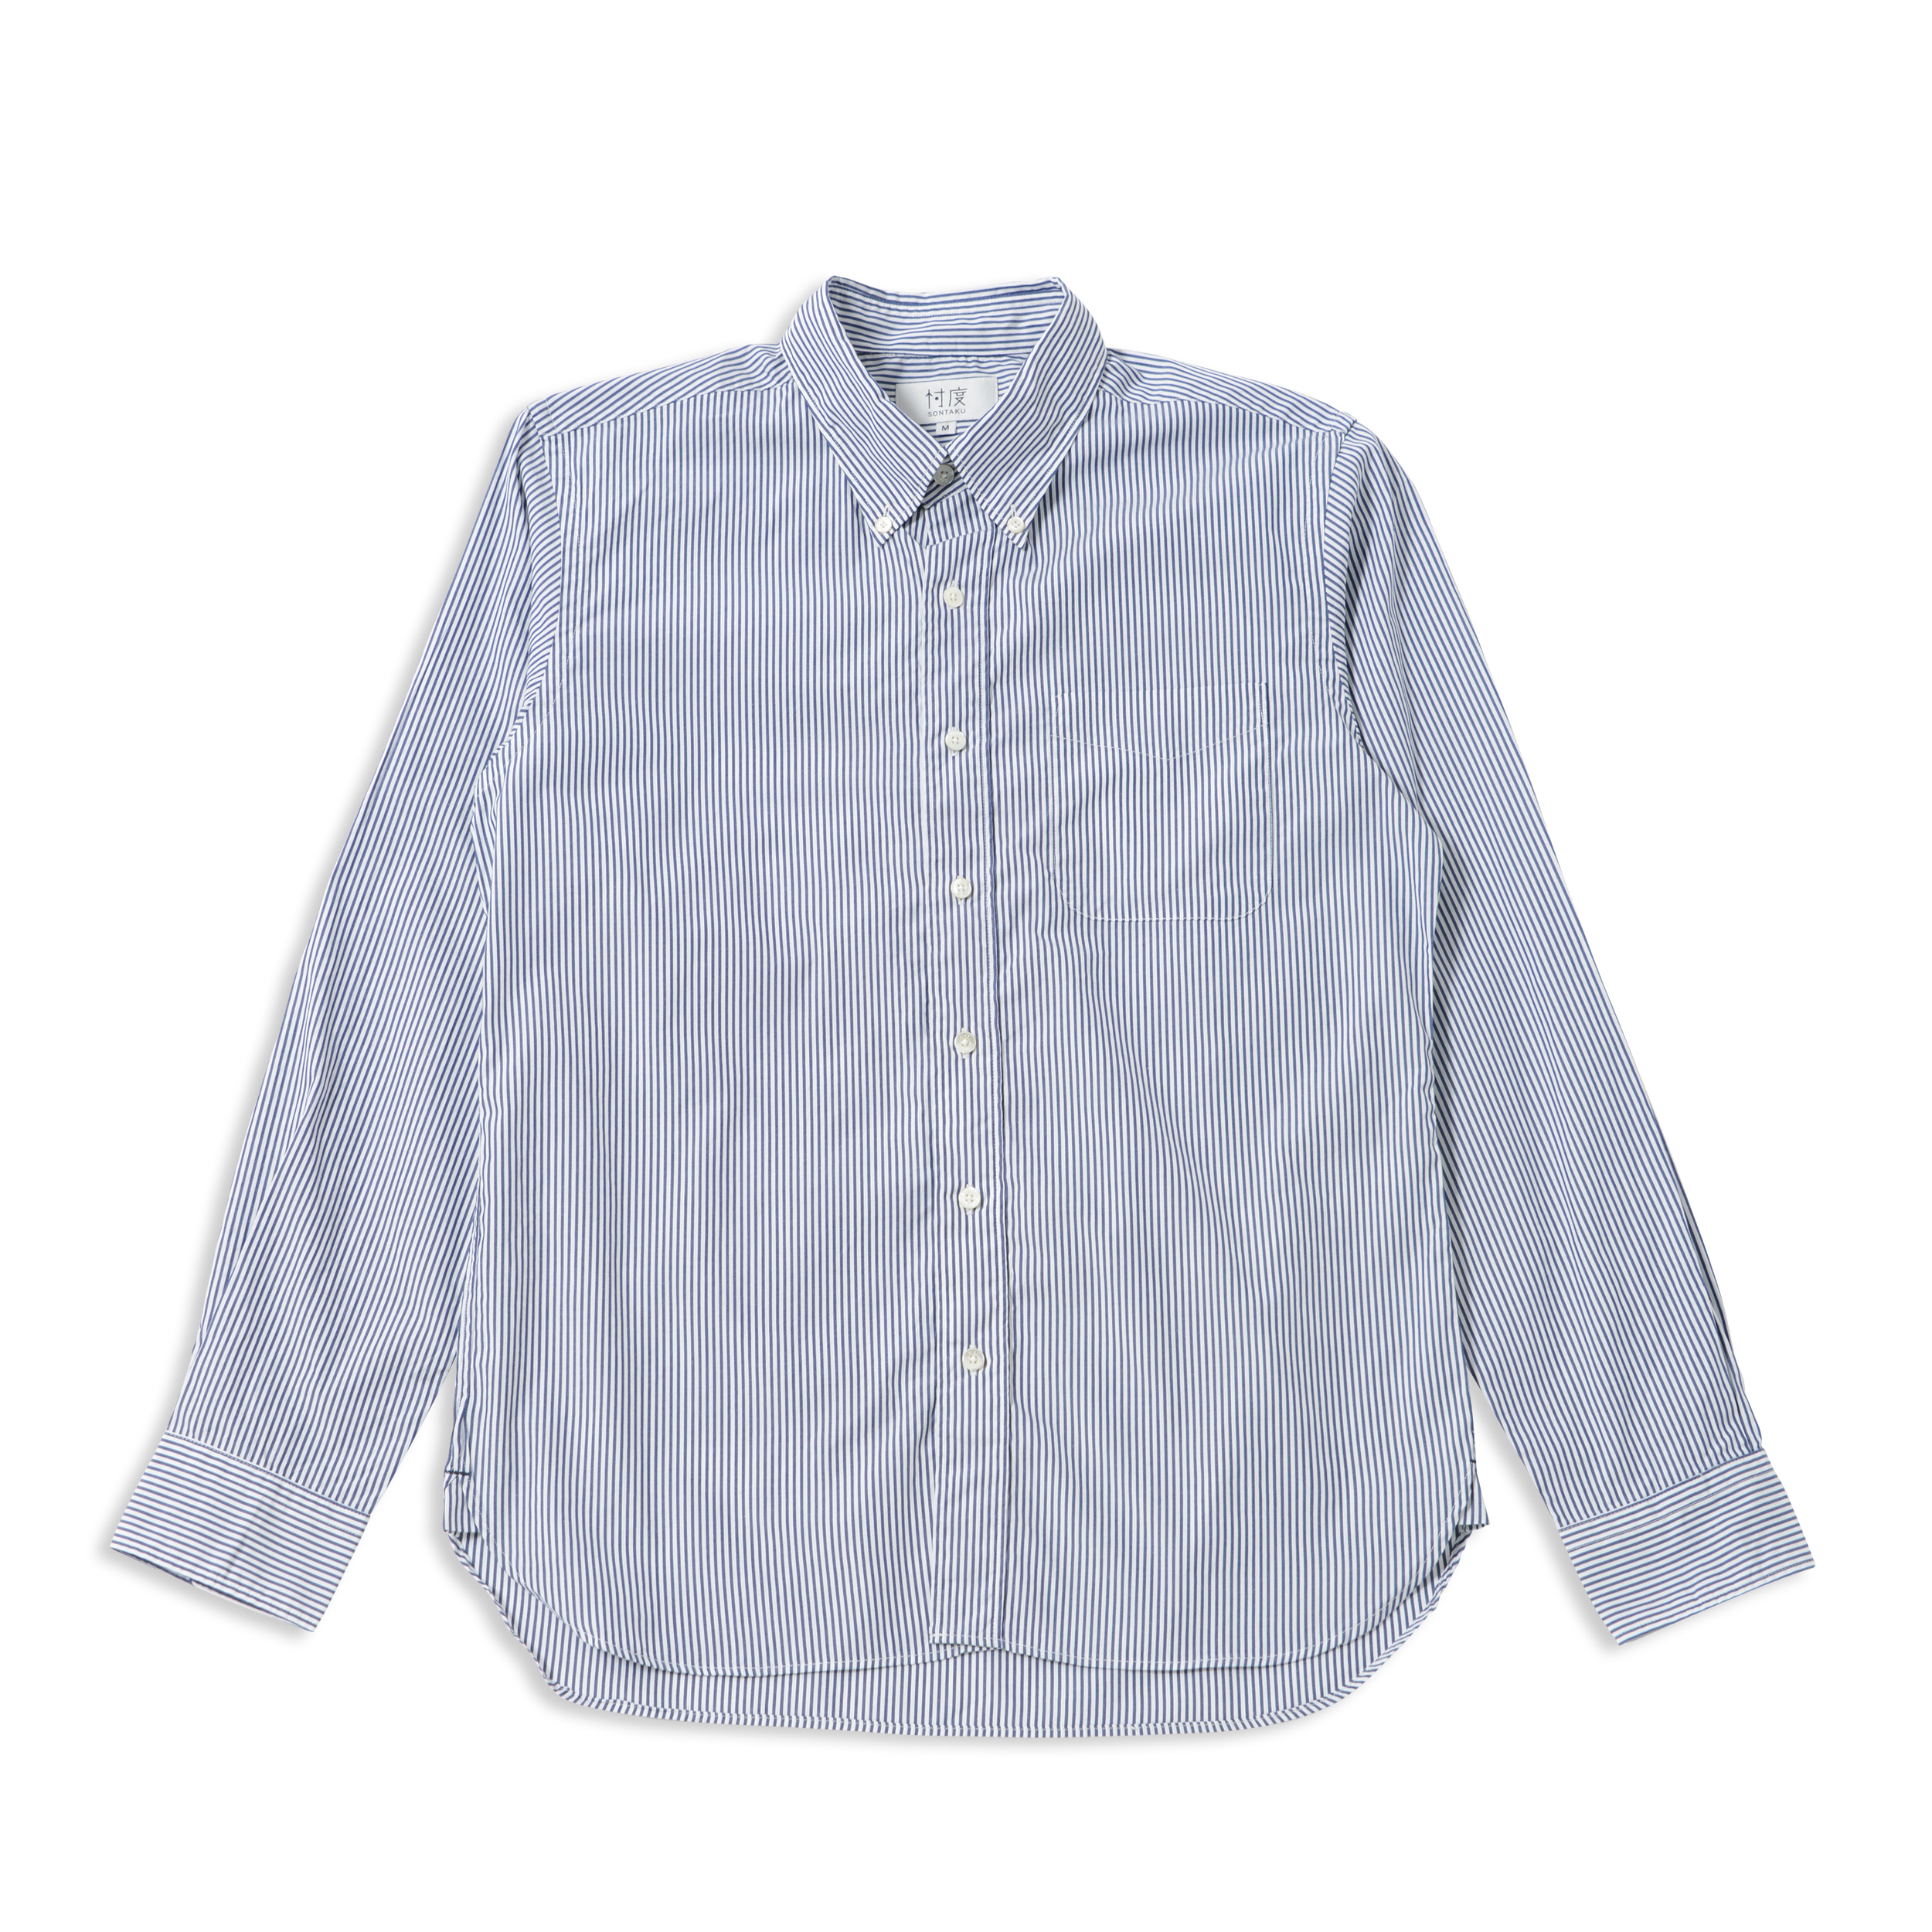 Broad cloth b.d shirt(定番)*